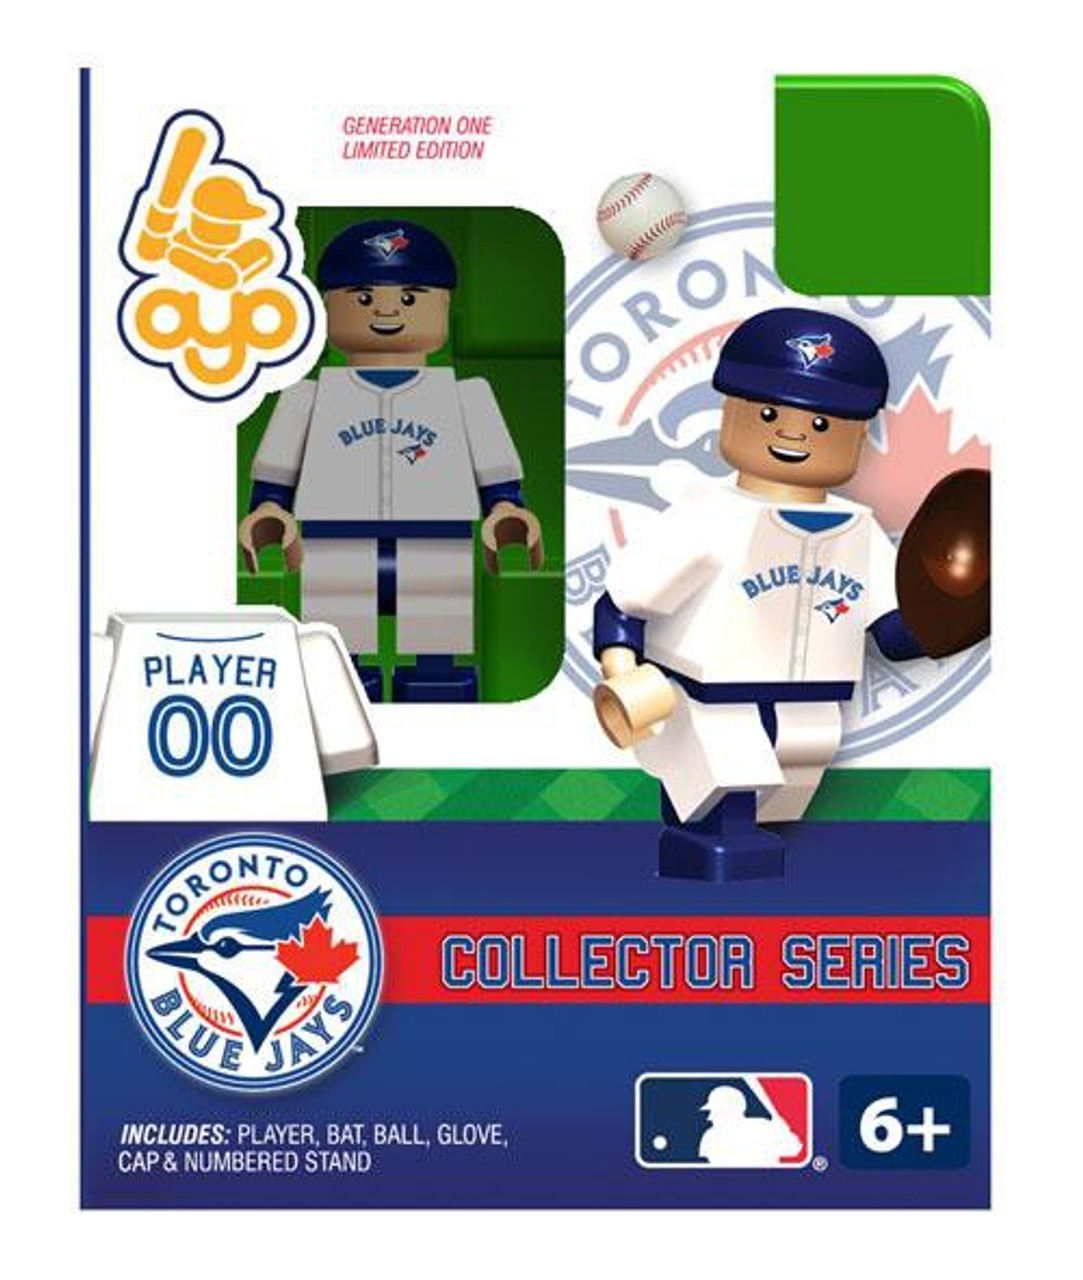 MLB Generation One Toronto Blue Jays Minifigure [Collector Series]